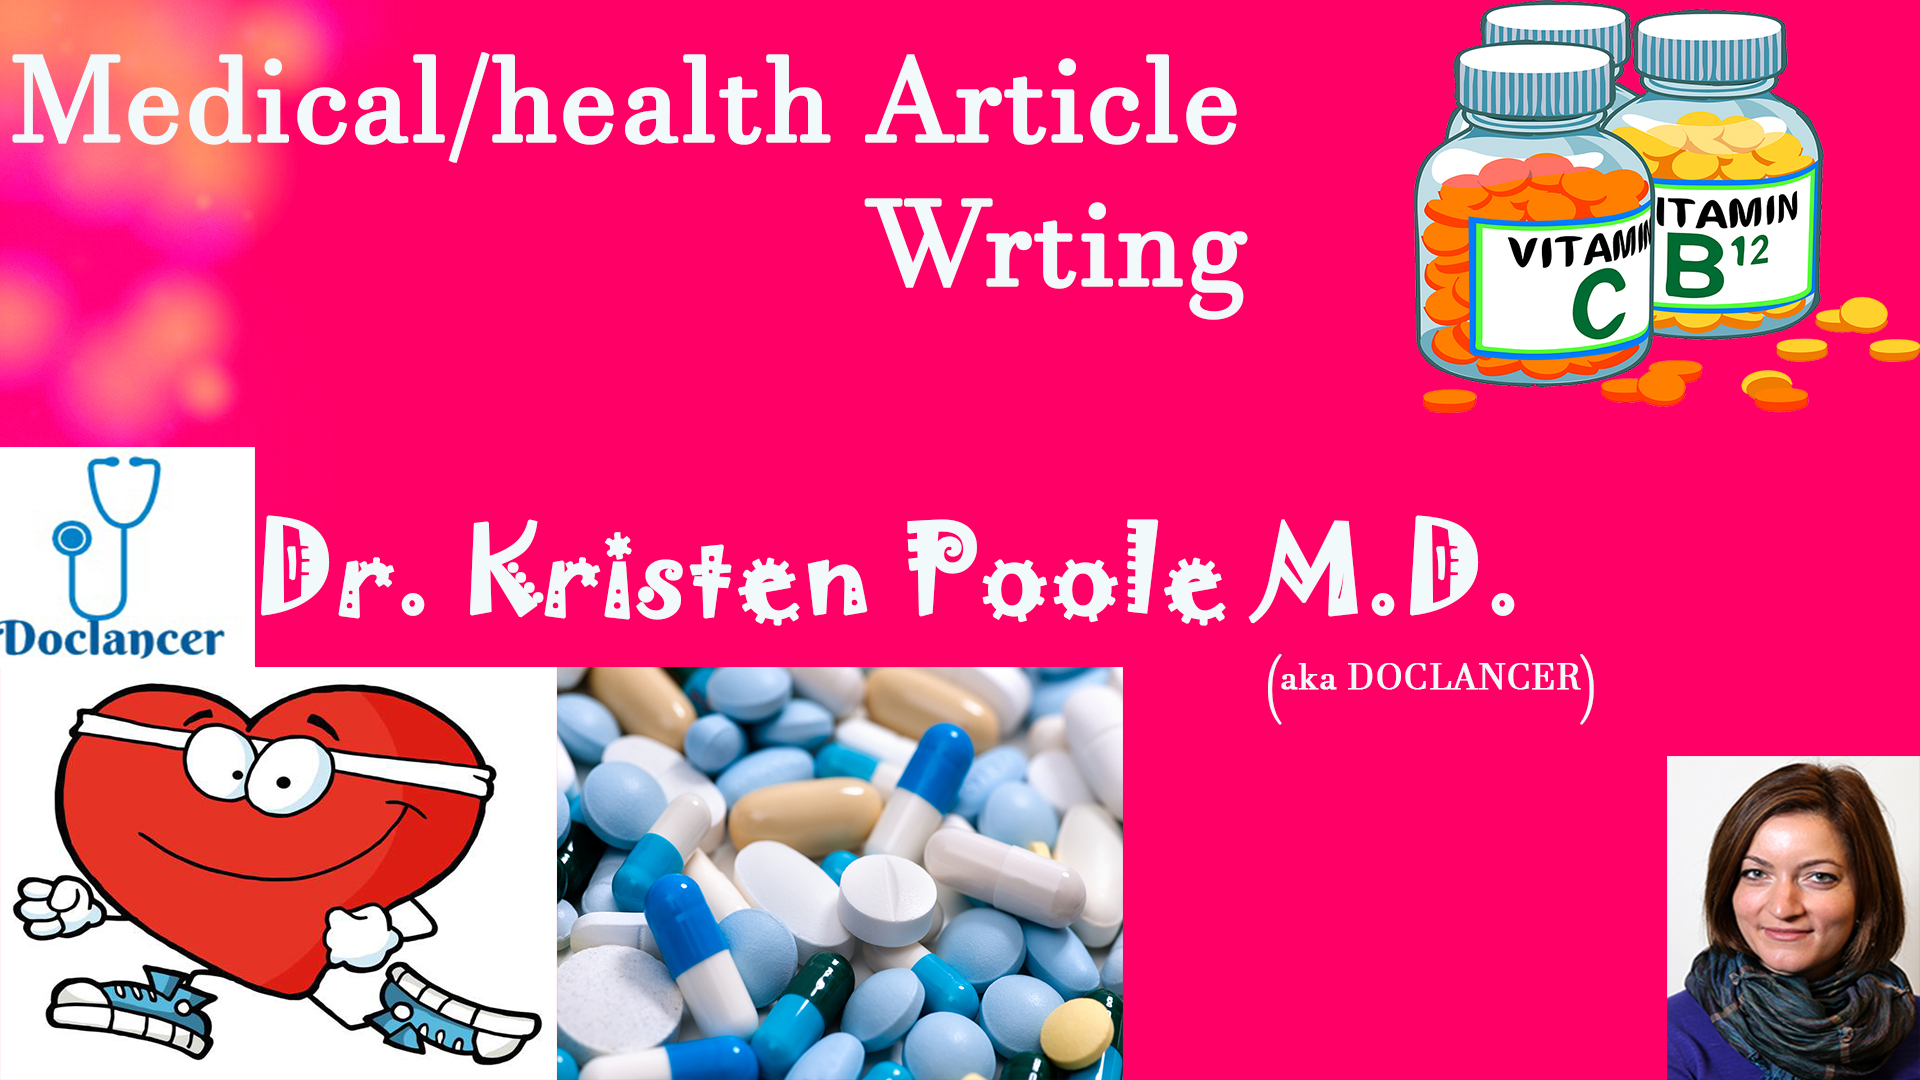 Write a 600 word optimized, health/medical article